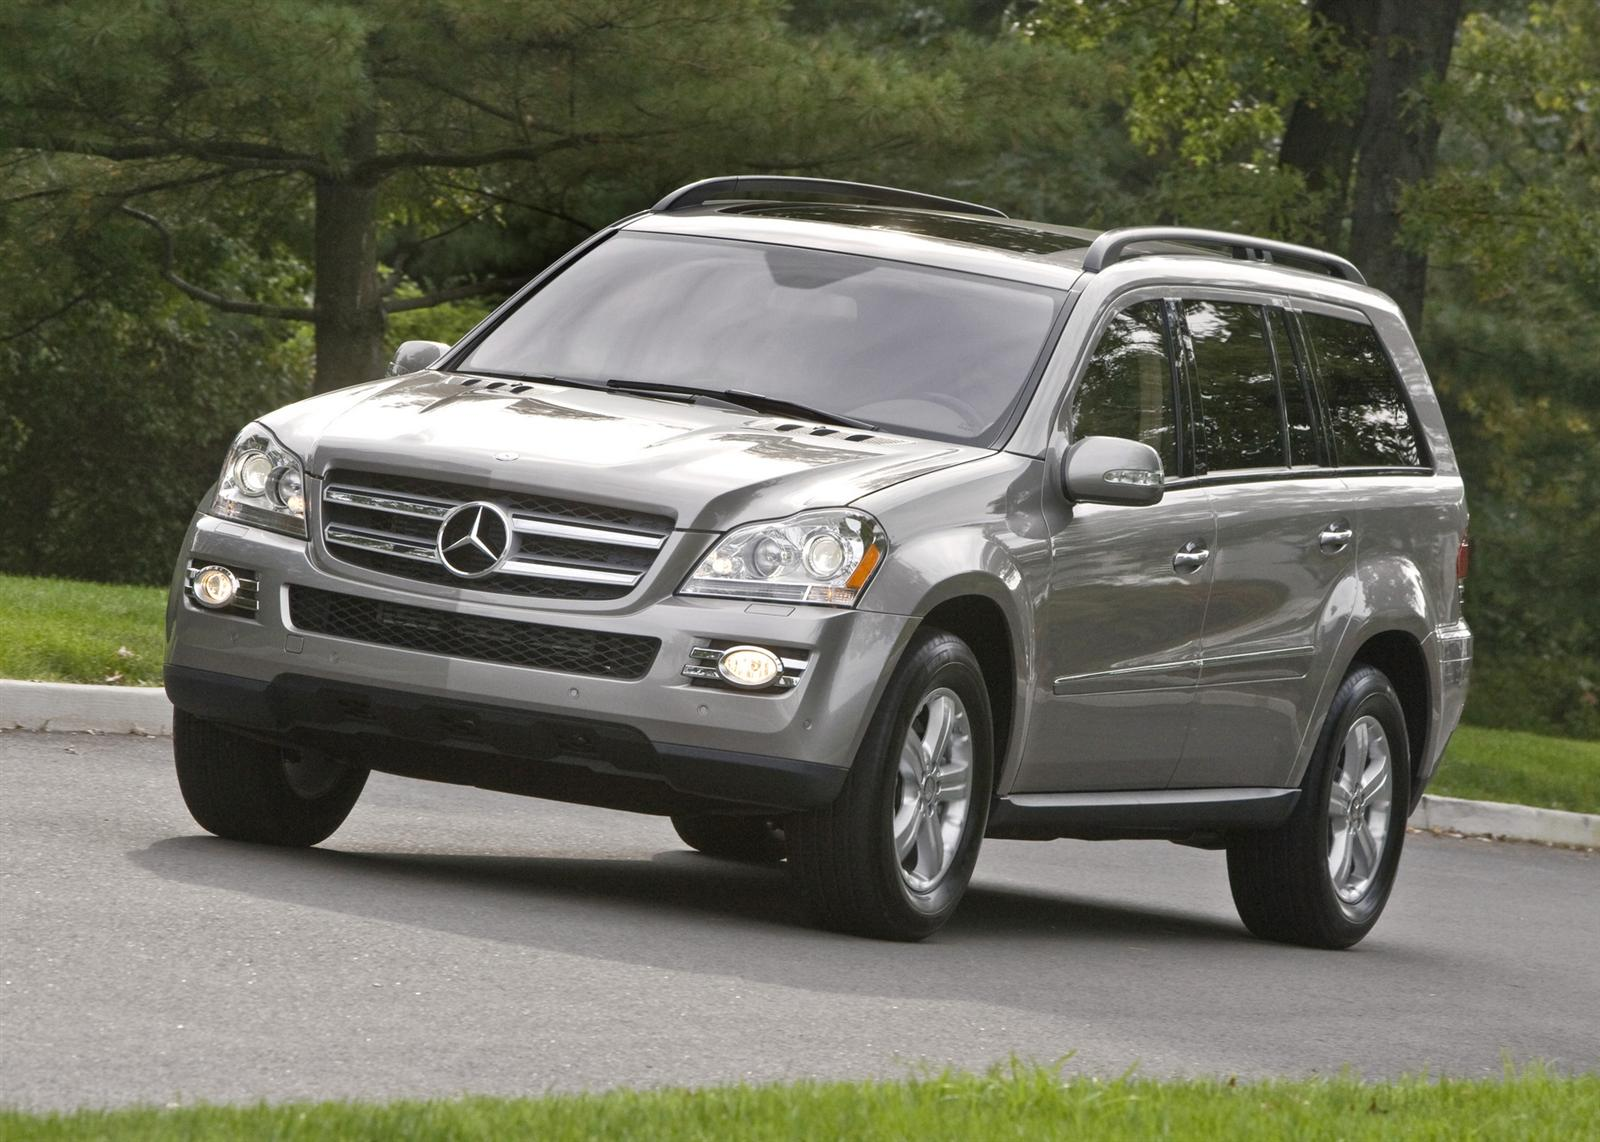 2008 mercedes benz gl class image photo 70 of 76. Black Bedroom Furniture Sets. Home Design Ideas